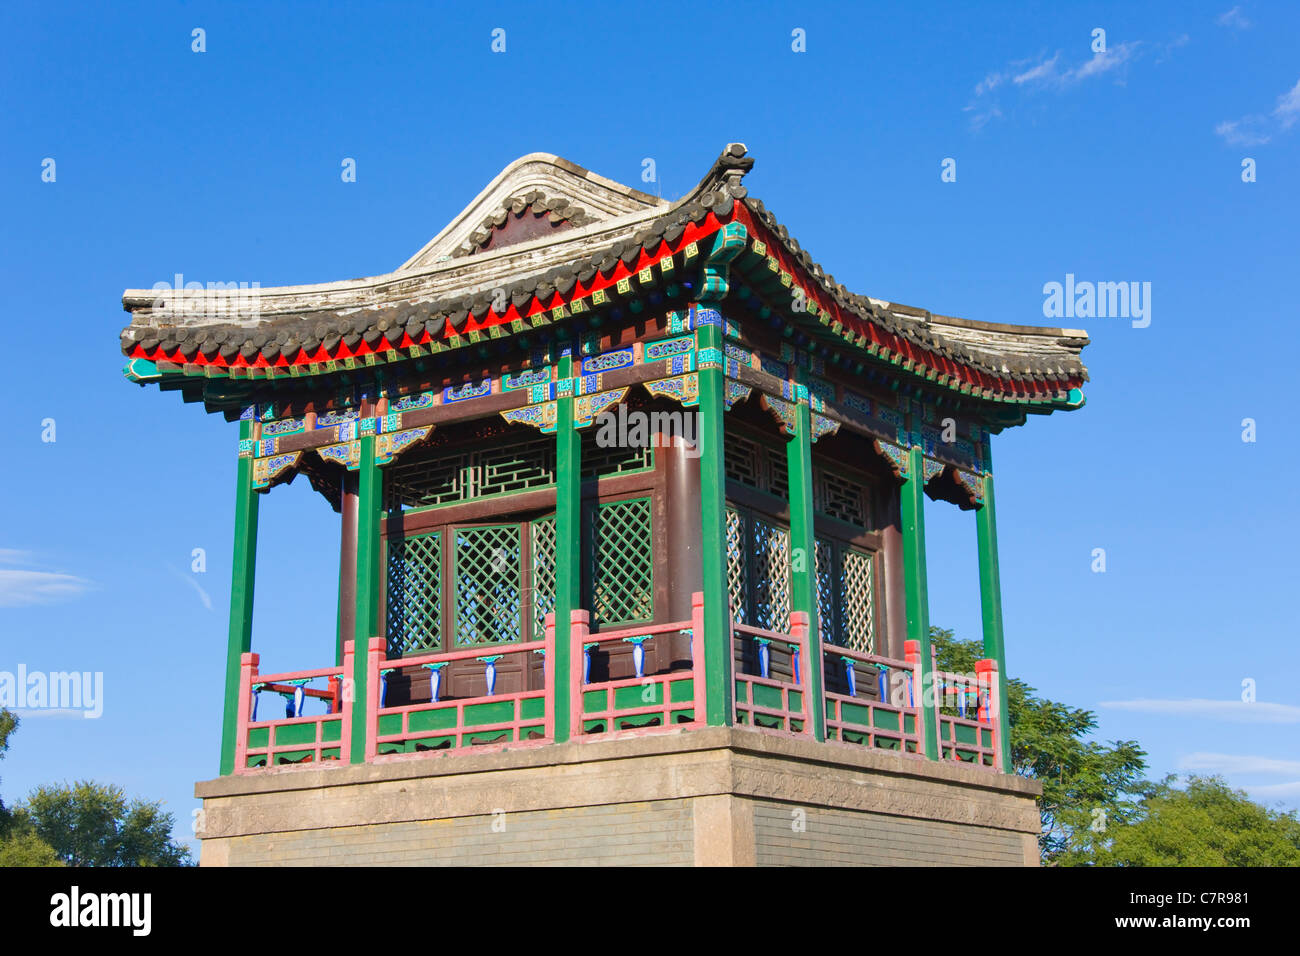 Pavilion in Chengde Mountain Resort, Chengde, Hebei Province, China - Stock Image